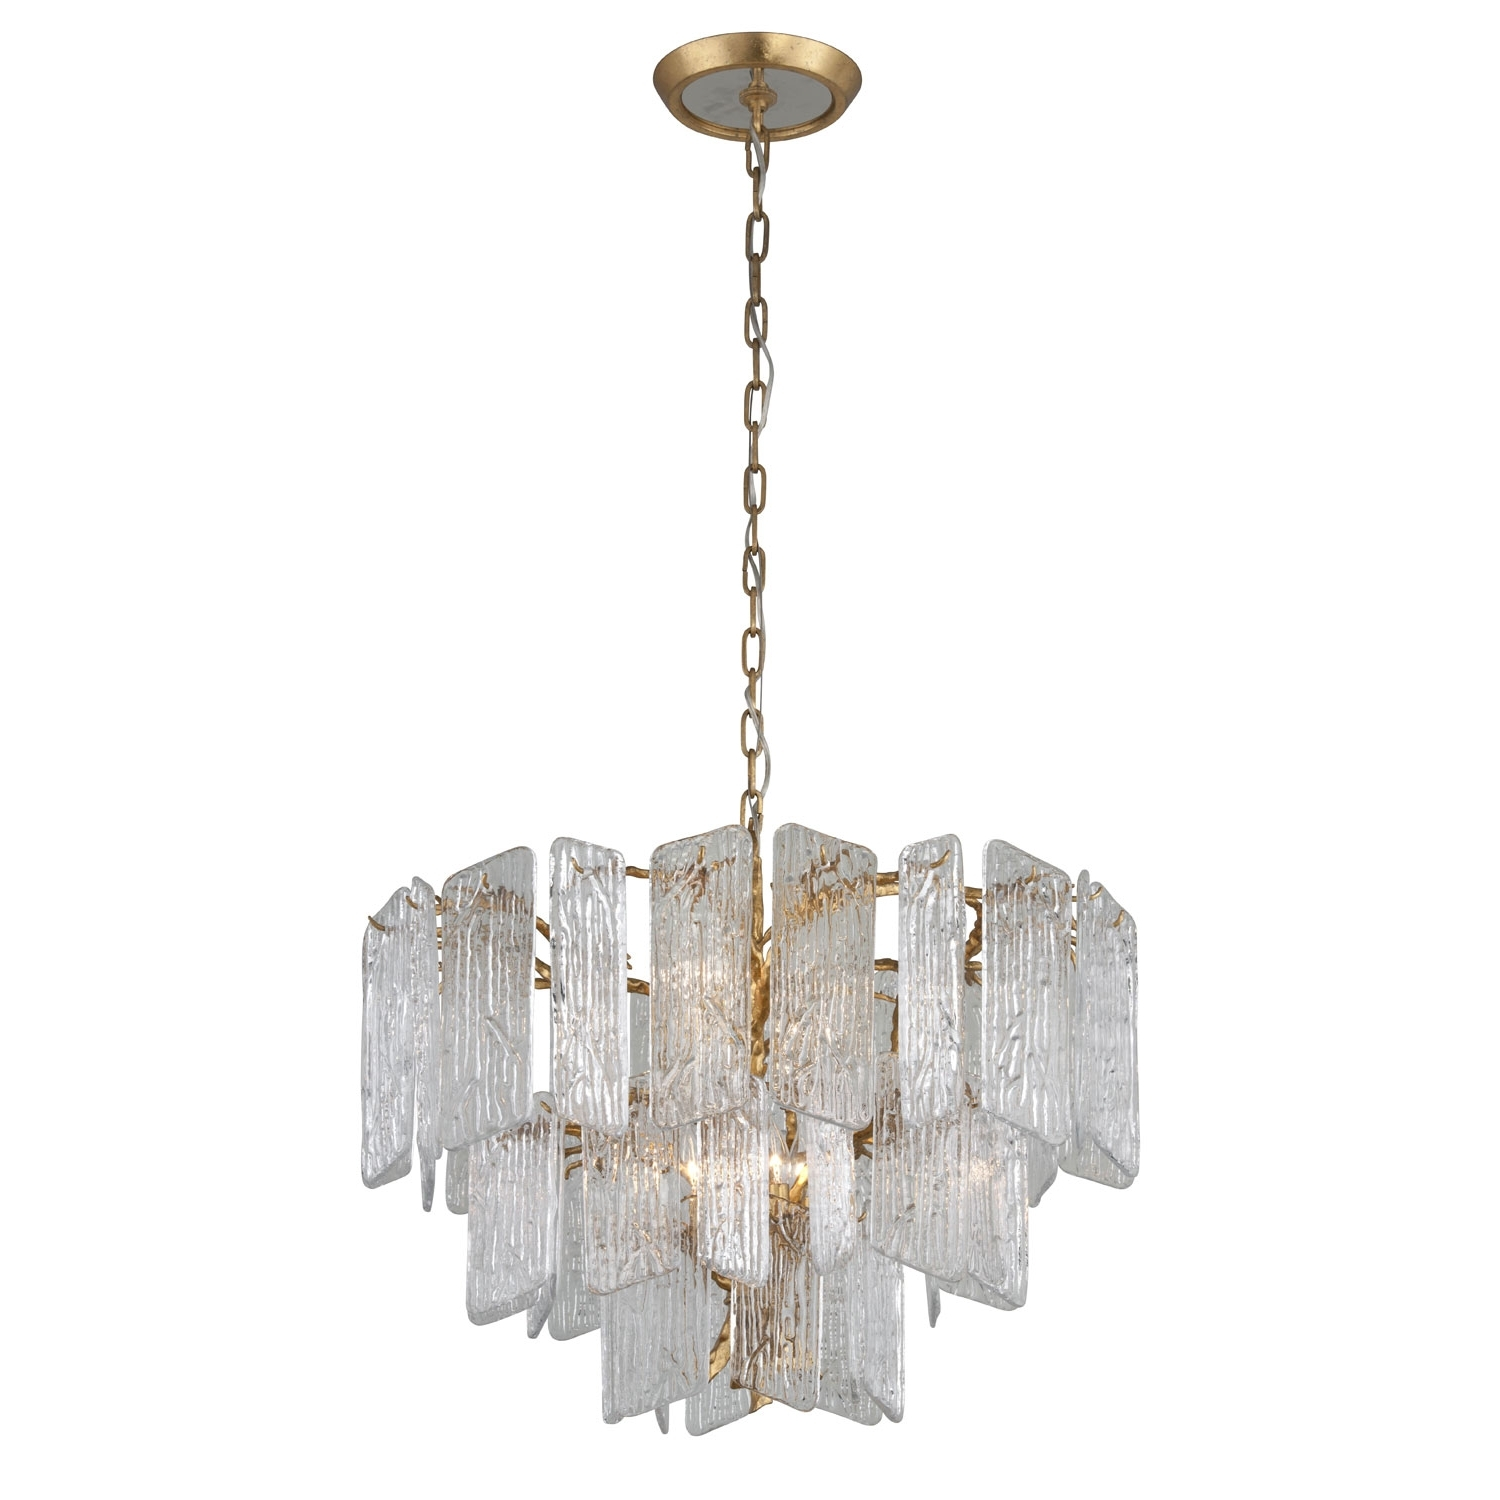 Over 300 Chandelier Styles To With Regard To 2018 Art Deco Chandeliers (View 17 of 20)